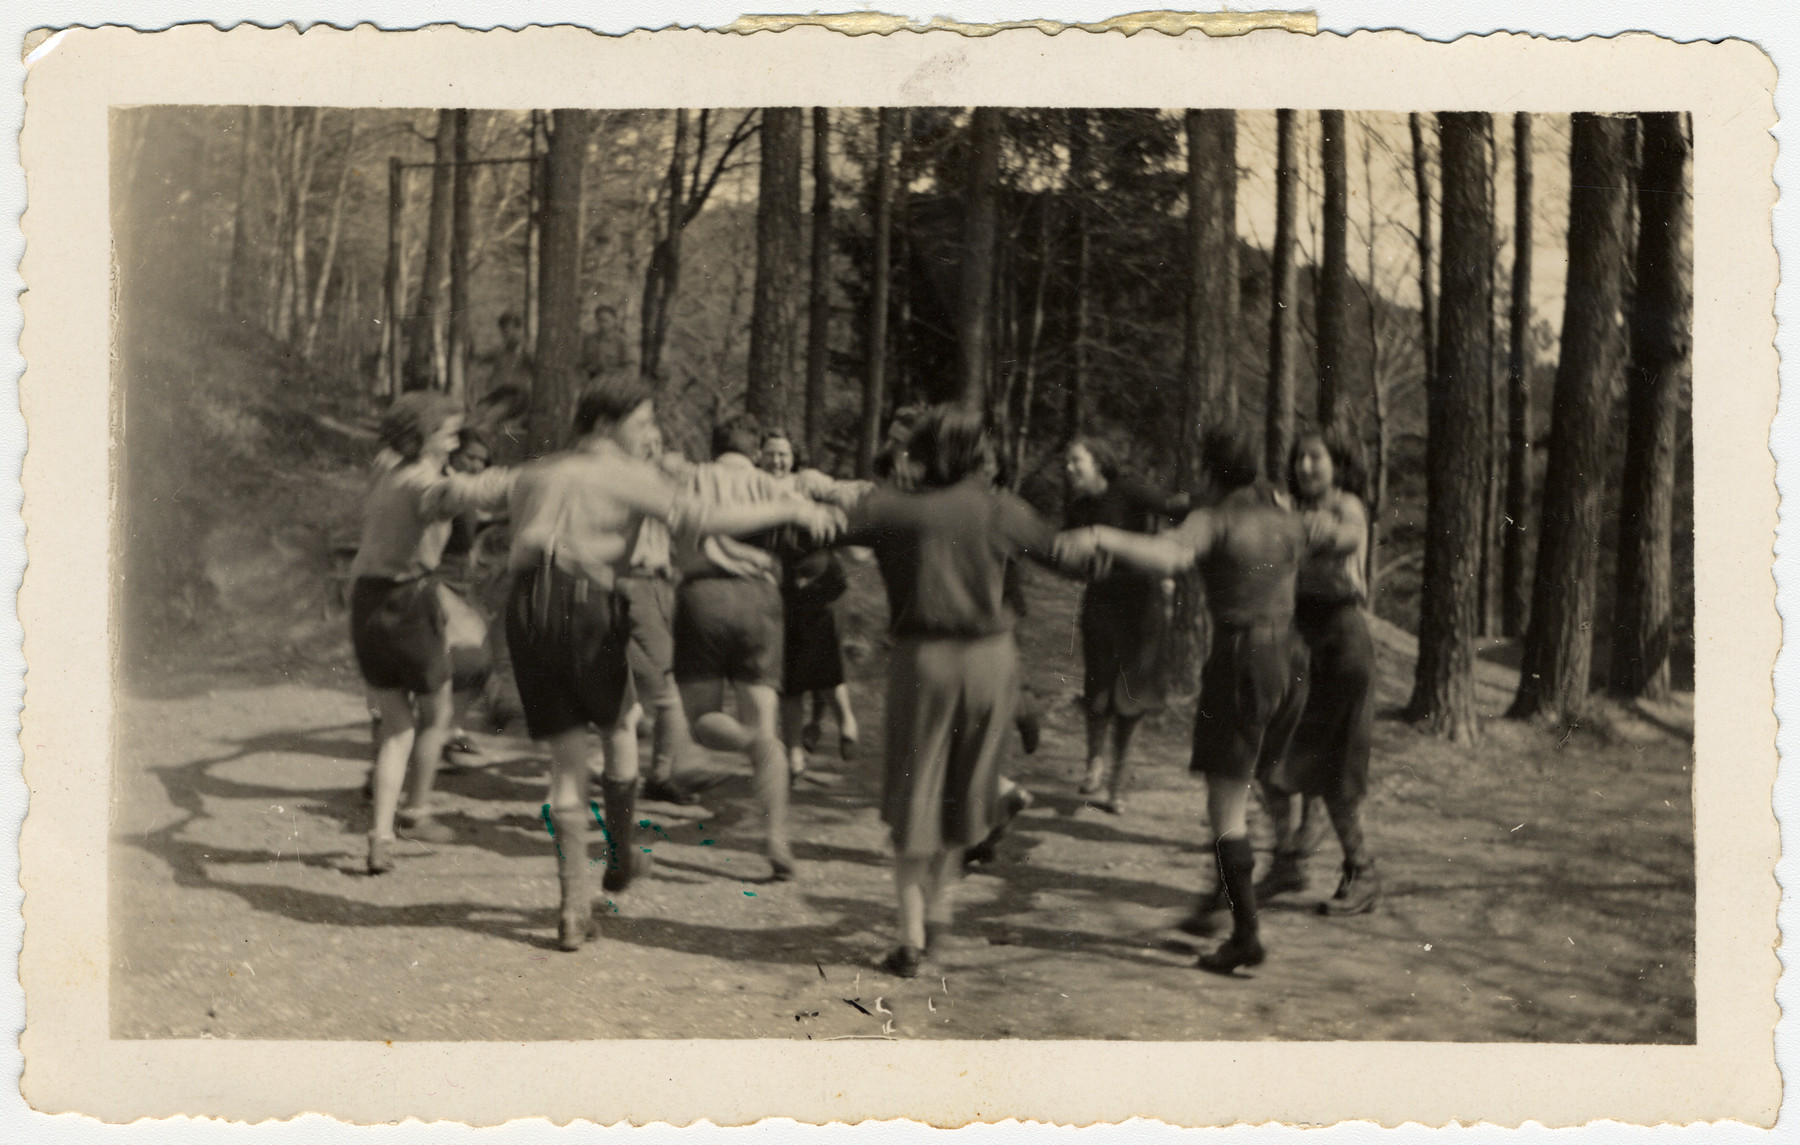 Zionist youth dance a hora in the woods in Switzerland.